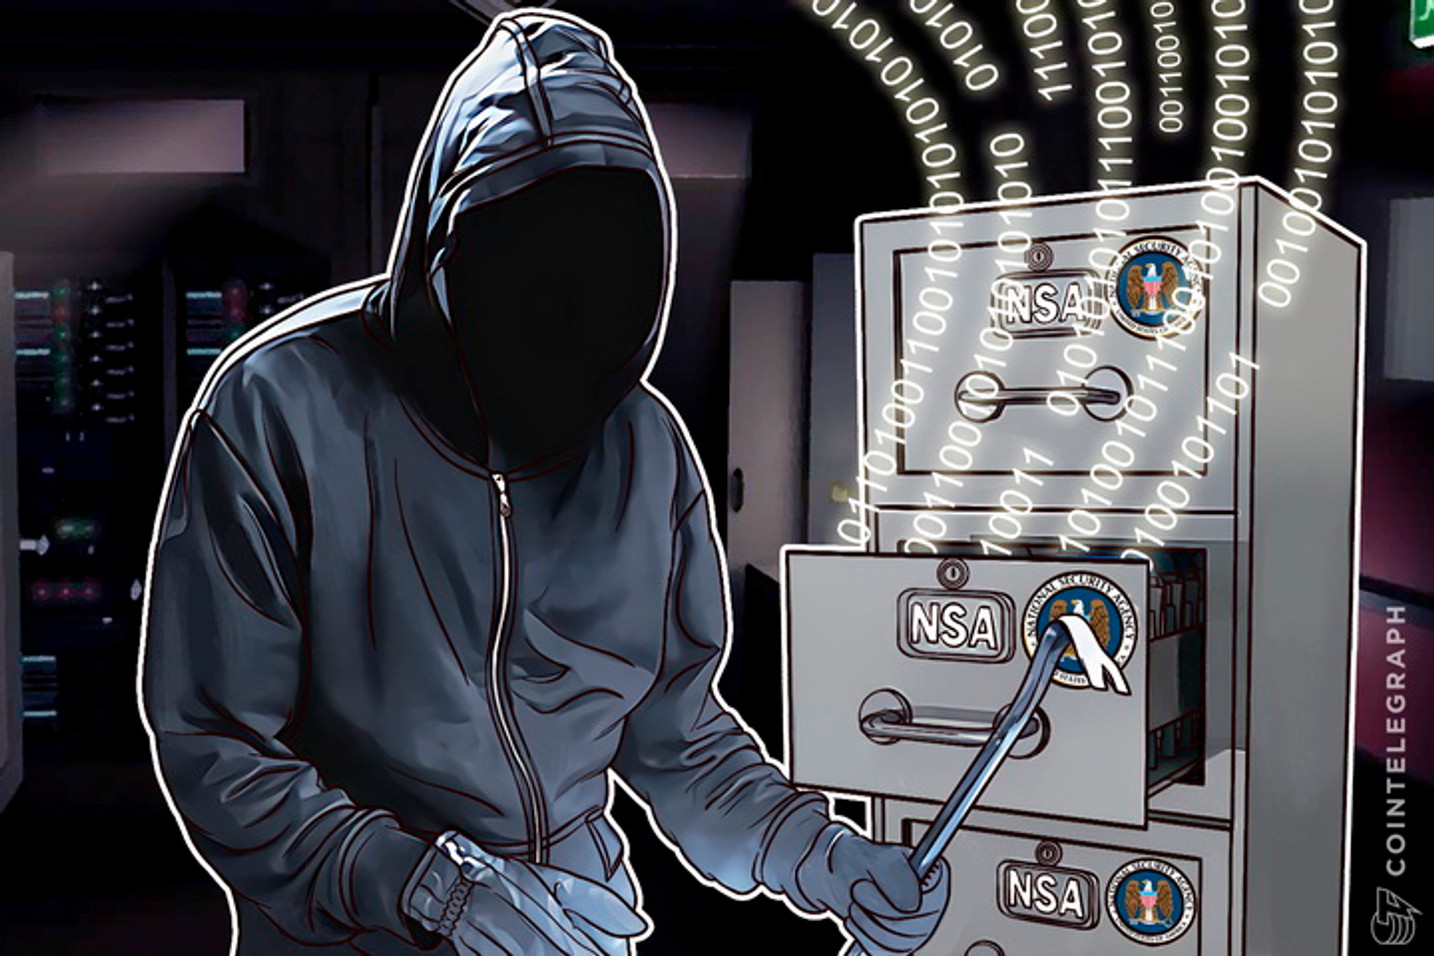 Wikileaks & Snowden-Verified Leaked NSA Data to Auction for 1 Million Bitcoin